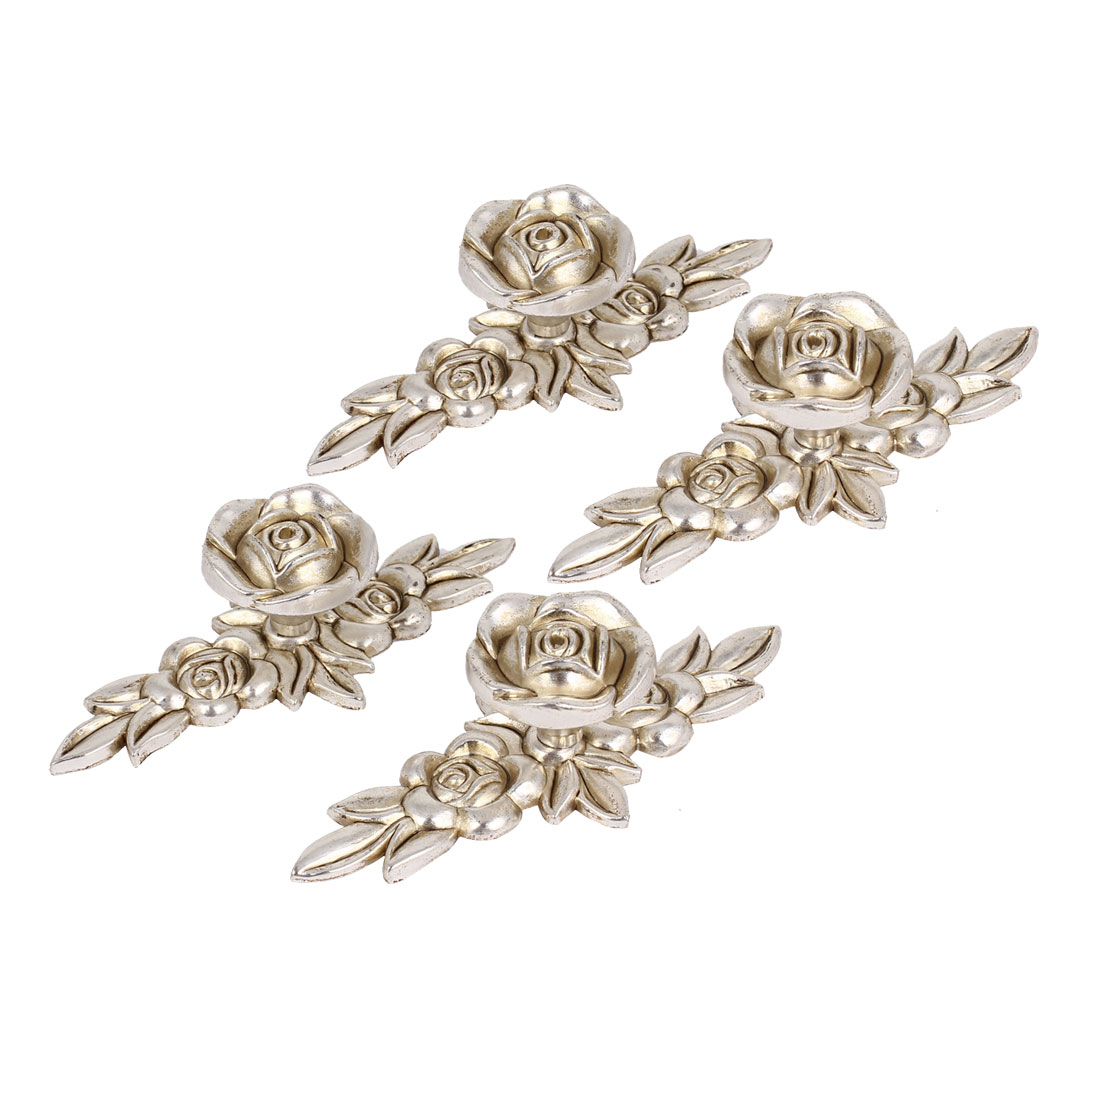 4pcs Antique Silver Rose Flower Pull Handle Bookcase Drawer Door Knobs 105mm